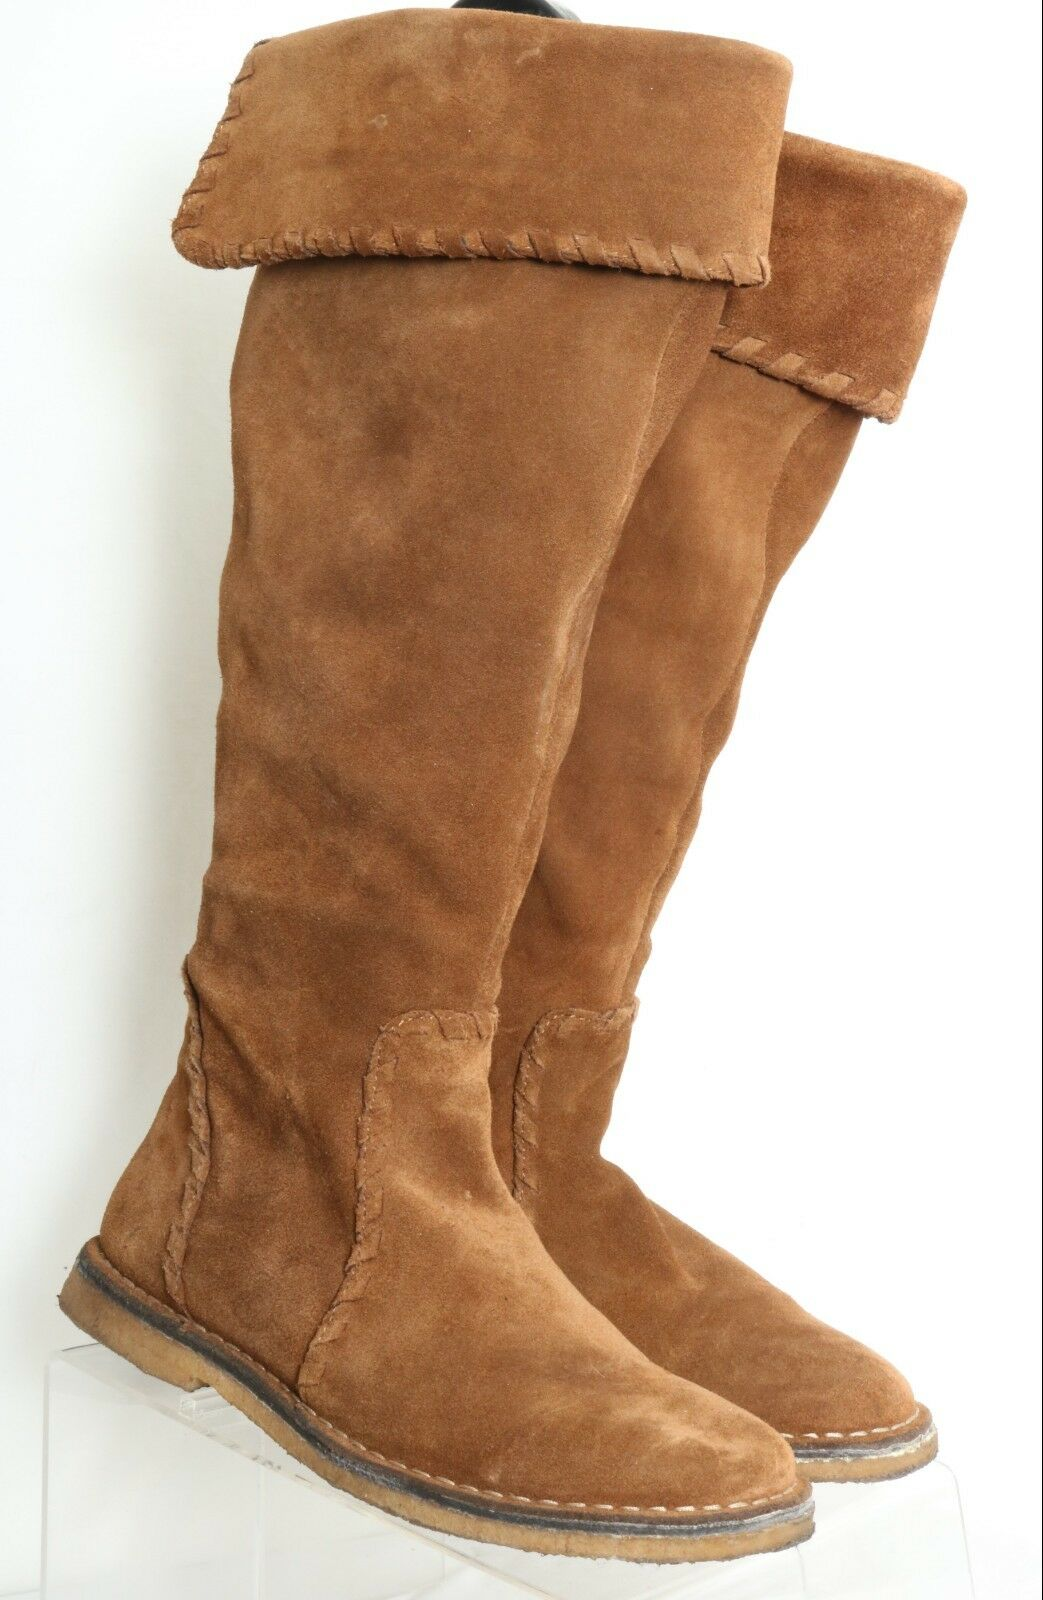 Johnston & Murphy Brown Suede Knee High Fashion Boots 78-50473 Women's US 7 B